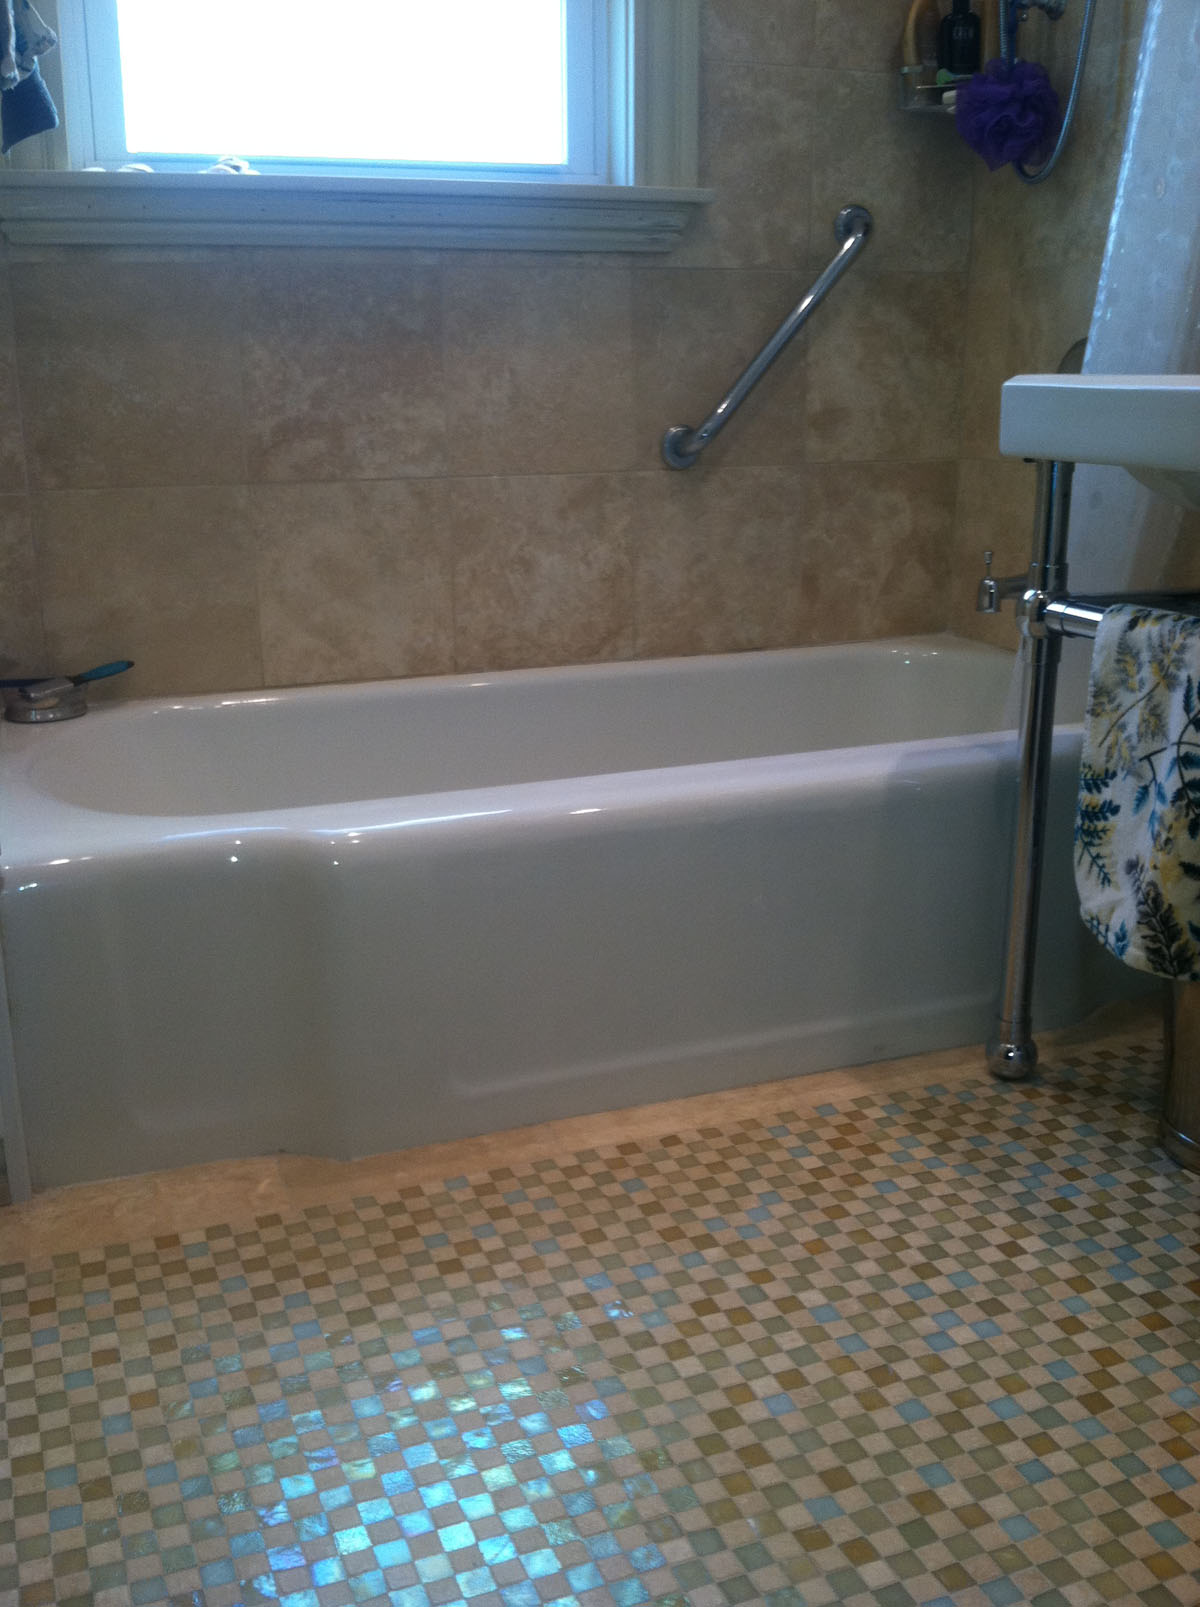 First Bathroom at Benton Rd. Somerville After Bathroom Remodel with New bathtub, floor tile, wall tile, accessible grab bar, and sink